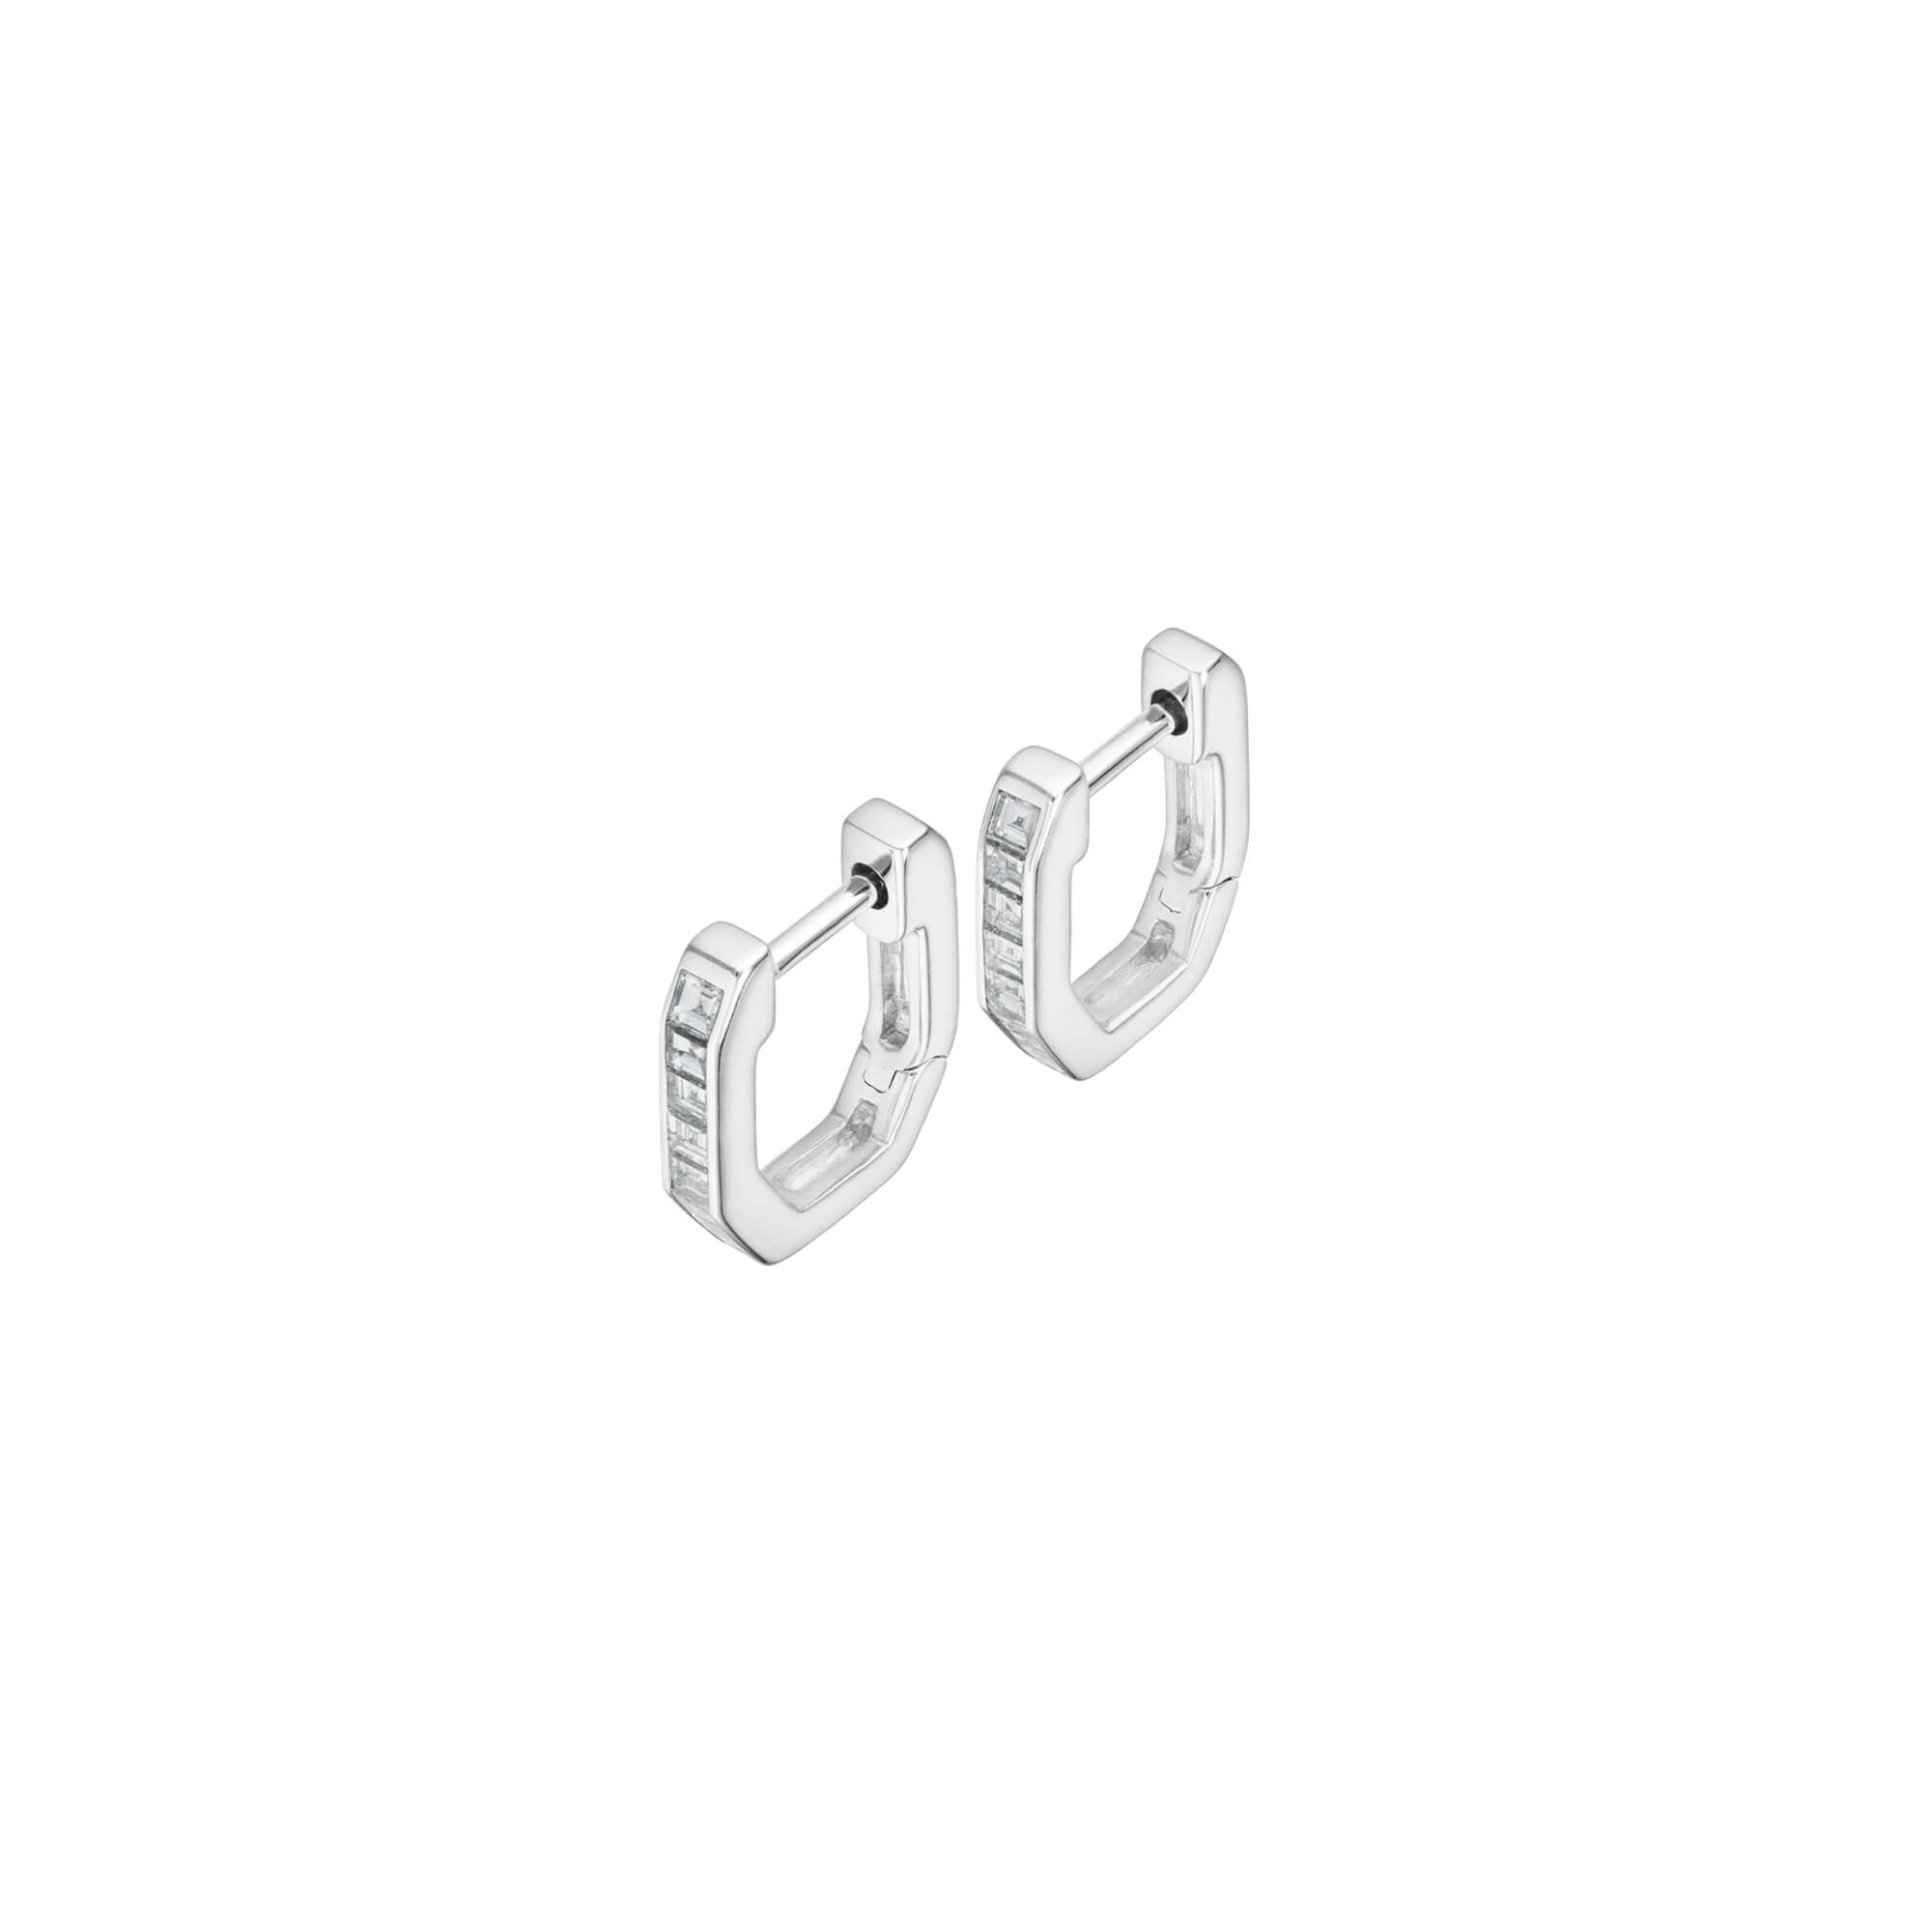 18ct White Gold and White Diamond Sleepers | CH₂